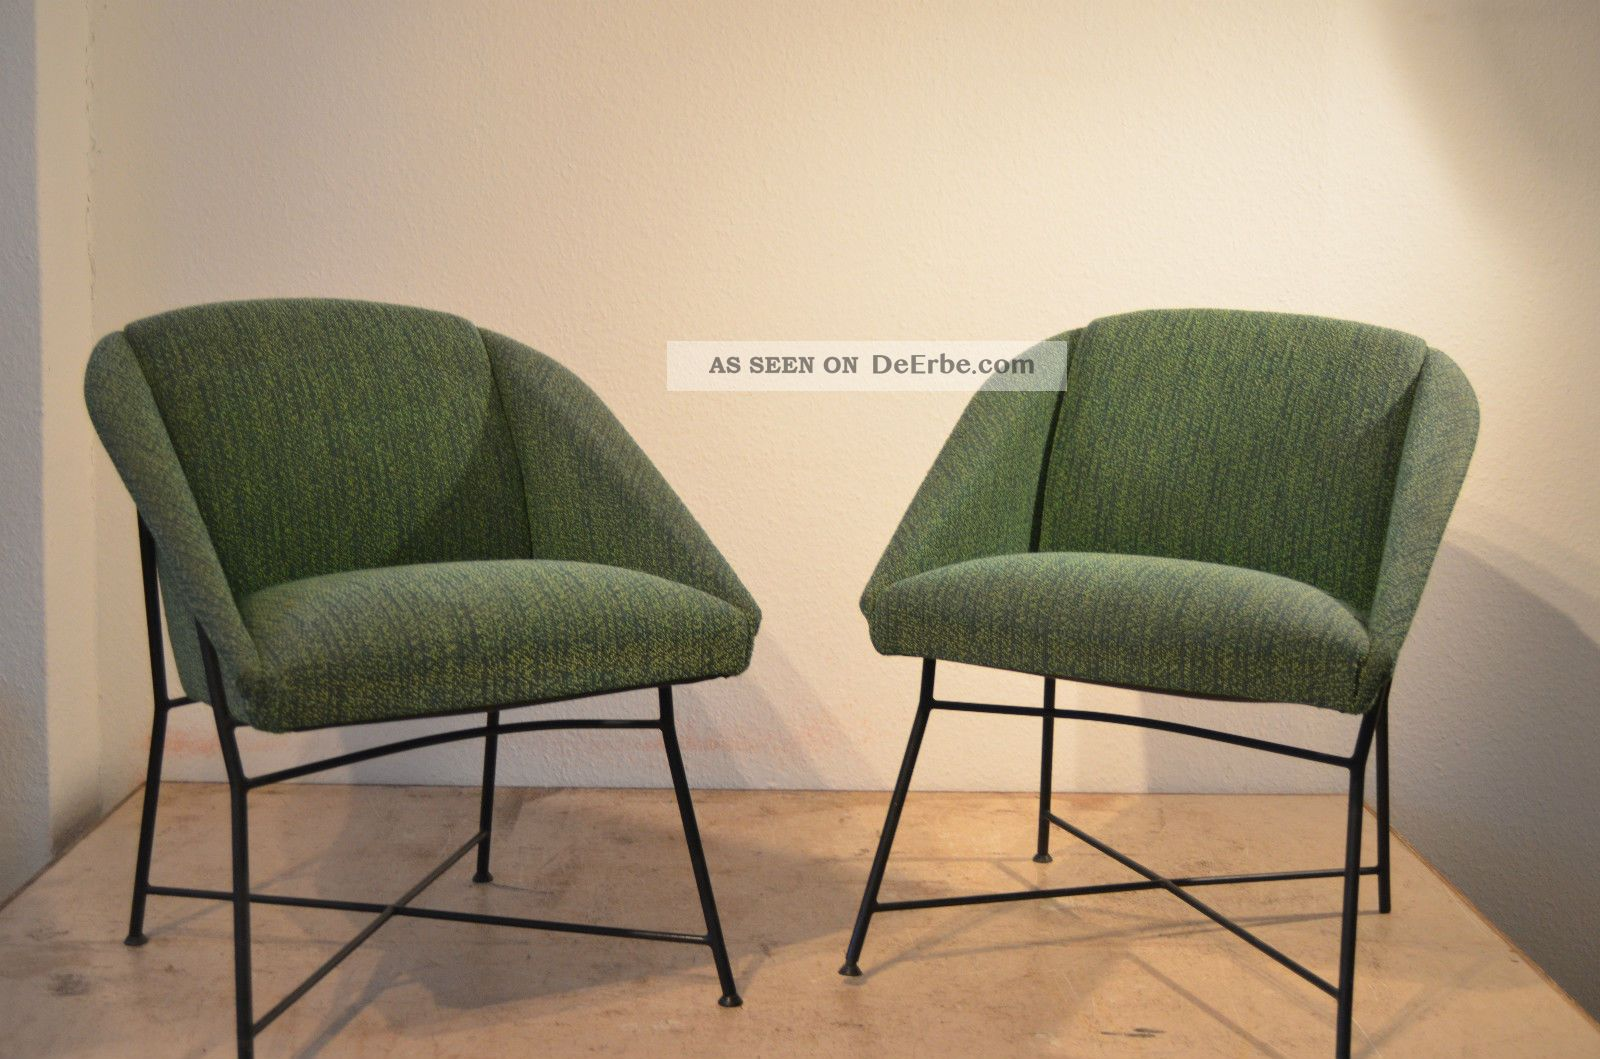 Sessel 50er Design Augusto Bozzi Lounge Chairs Sessel 50er Saporiti Design Knoll